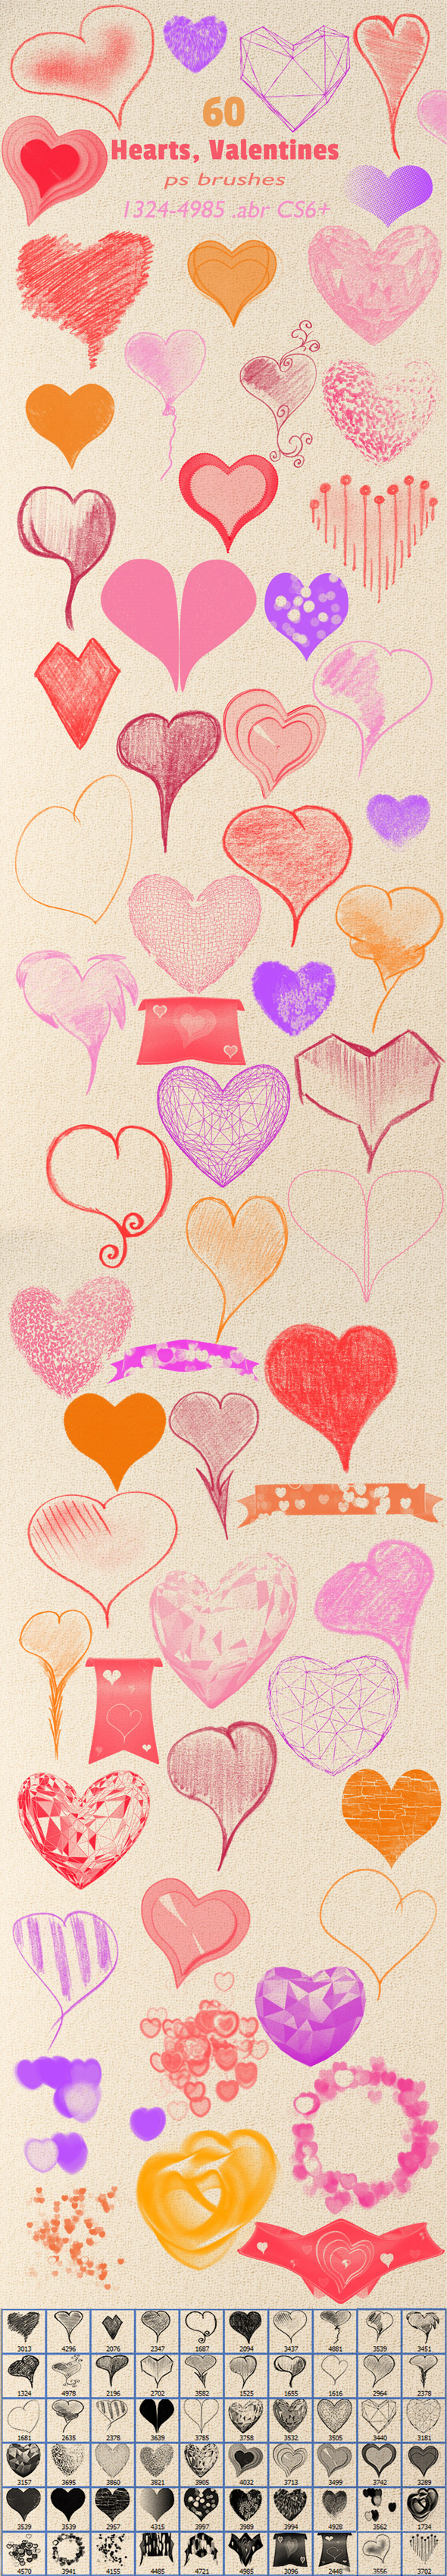 Hearts Valentines Brushes - Artistic Brushes